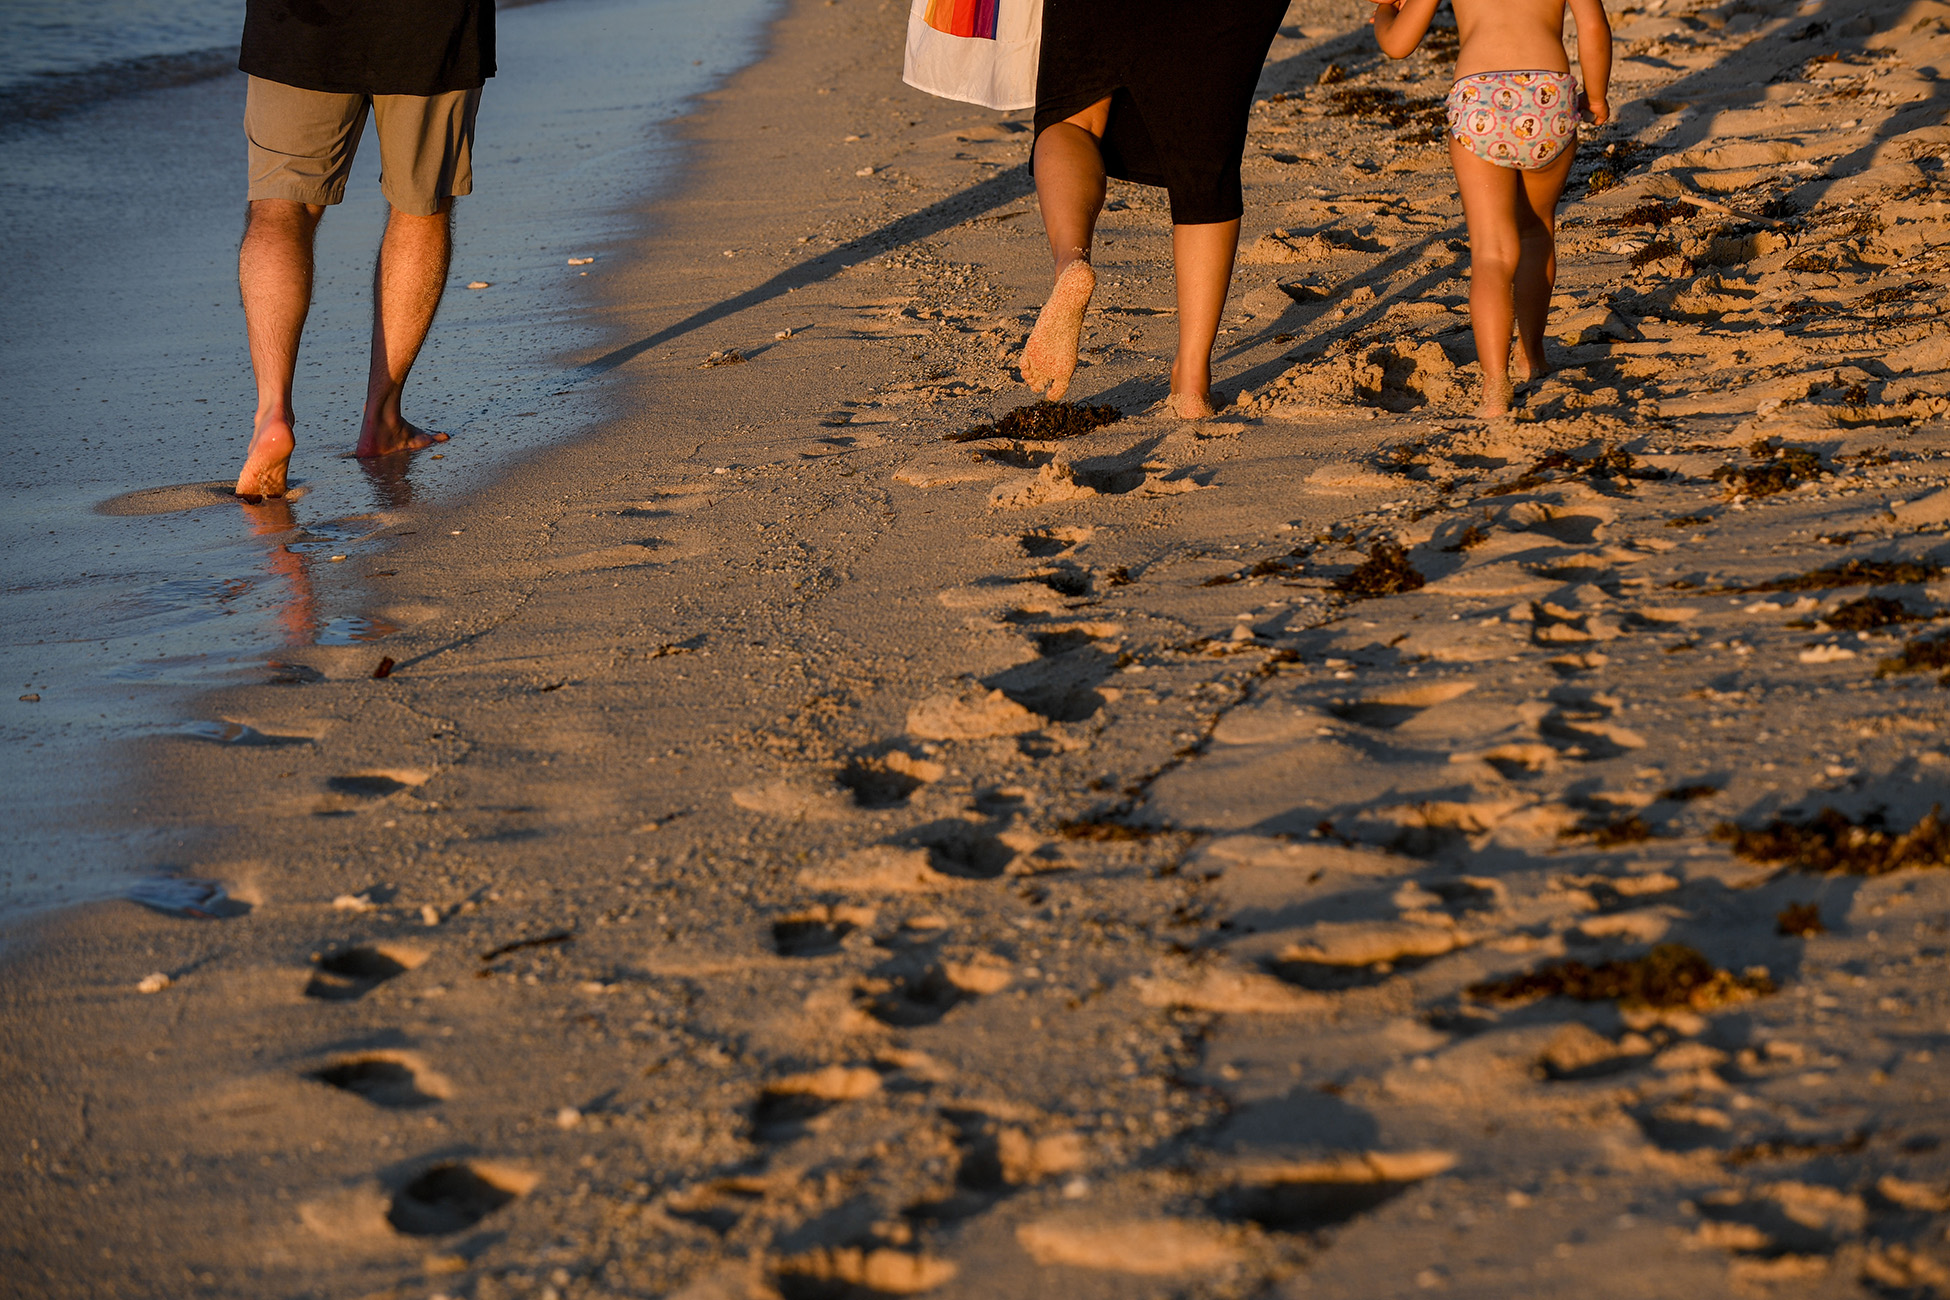 The family leaves footprints in the sand